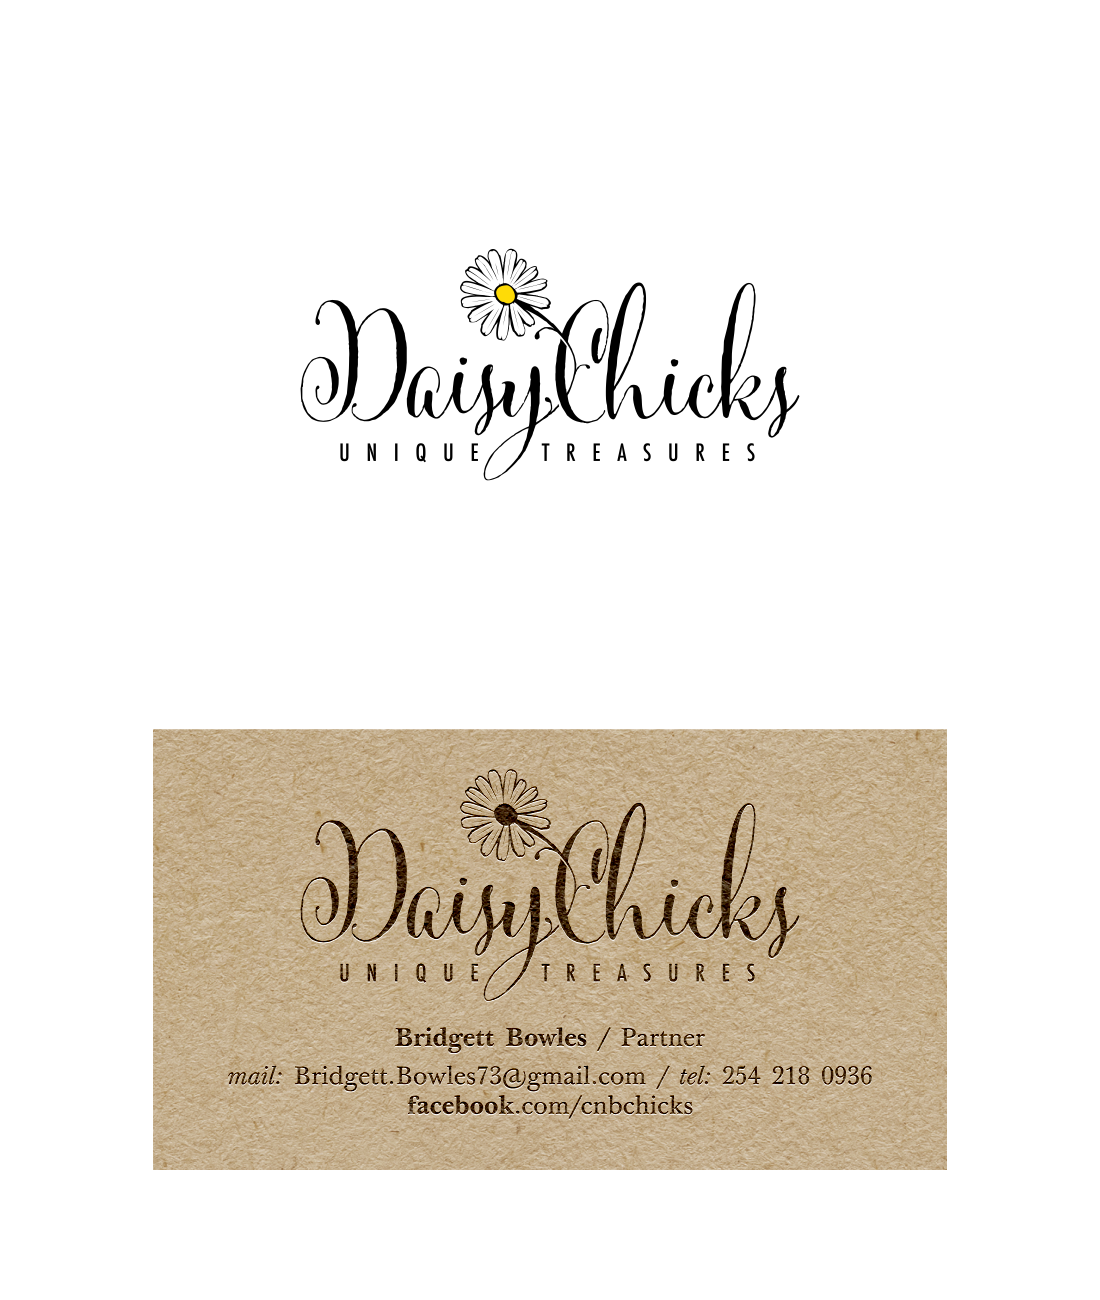 Design a logo and business card for Daisy Chicks